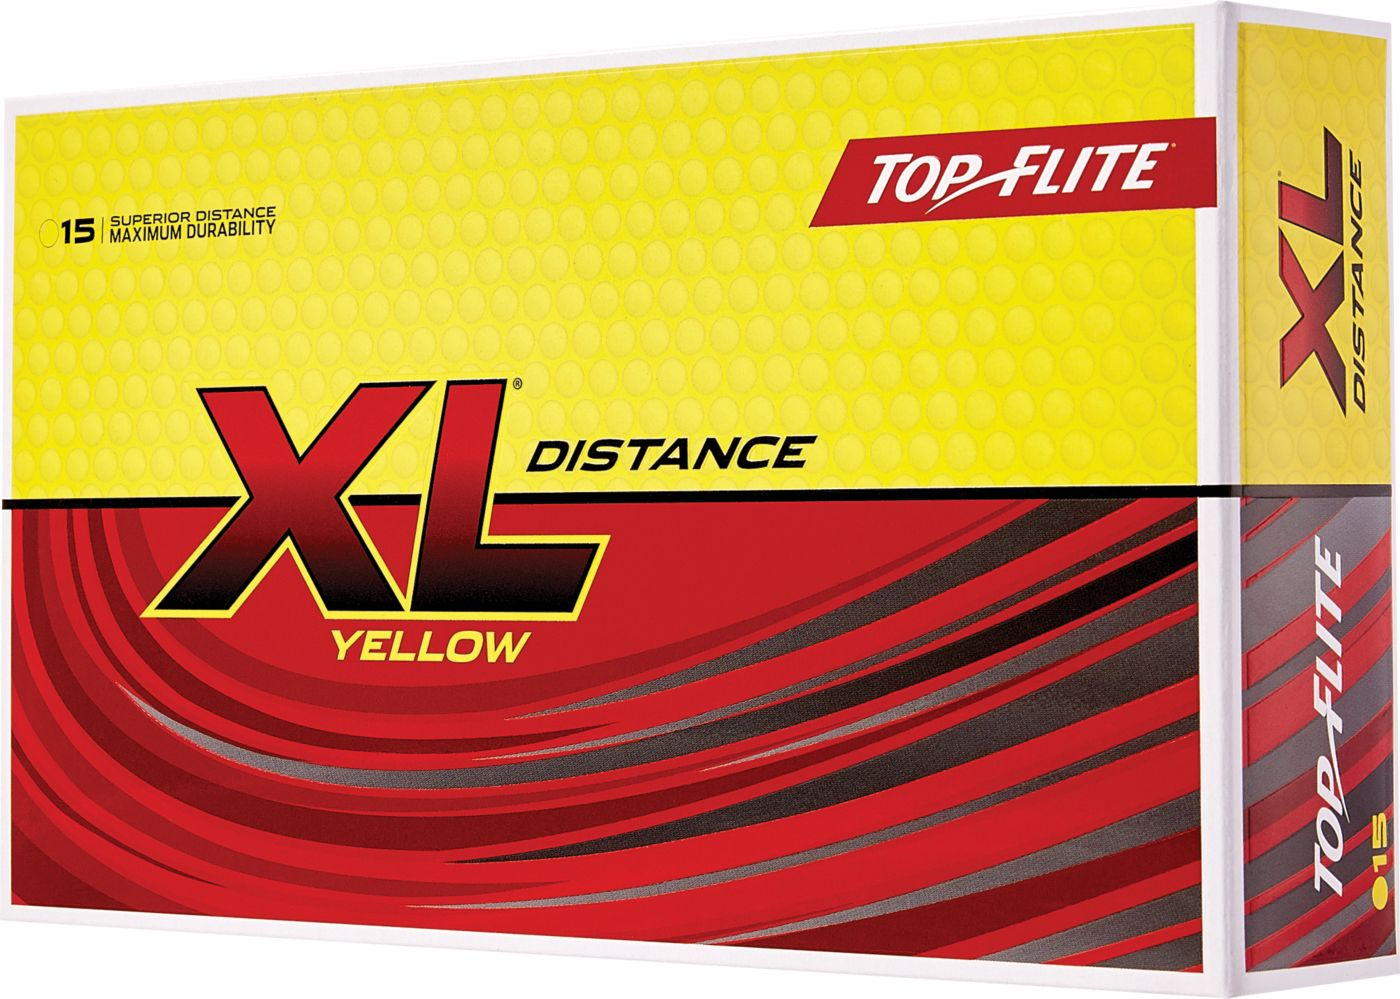 Top Flite 2019 XL Distance Yellow Personalized Golf Balls – 15 Pack